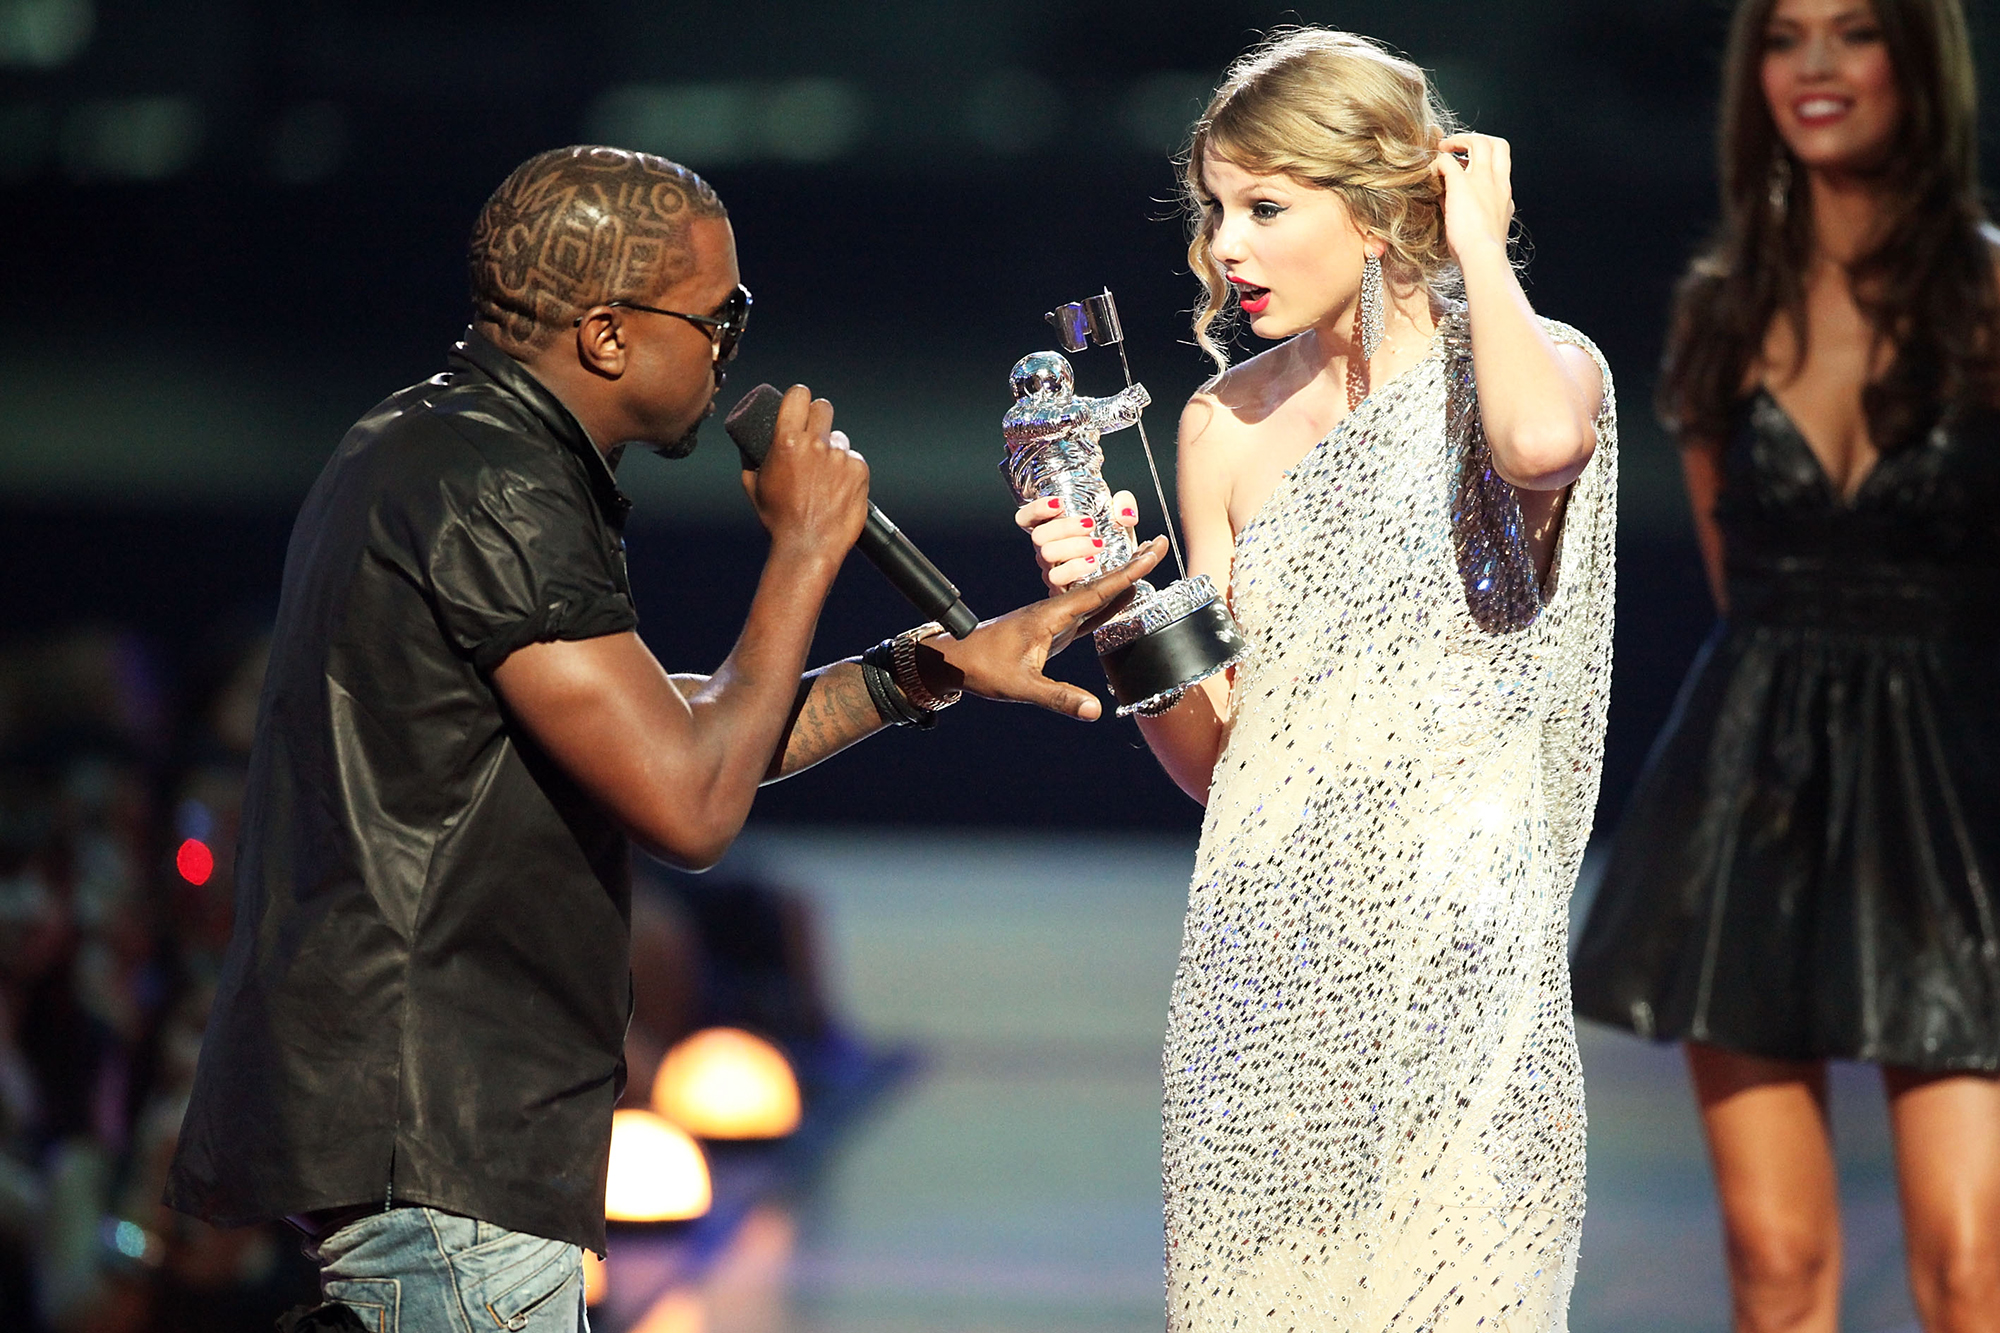 Kanye West jumps onstage after Taylor Swift won the  Best Female Video  award during the 2009 MTV VMAs at Radio City Music Hall in New York City, on Sept. 13, 2009.